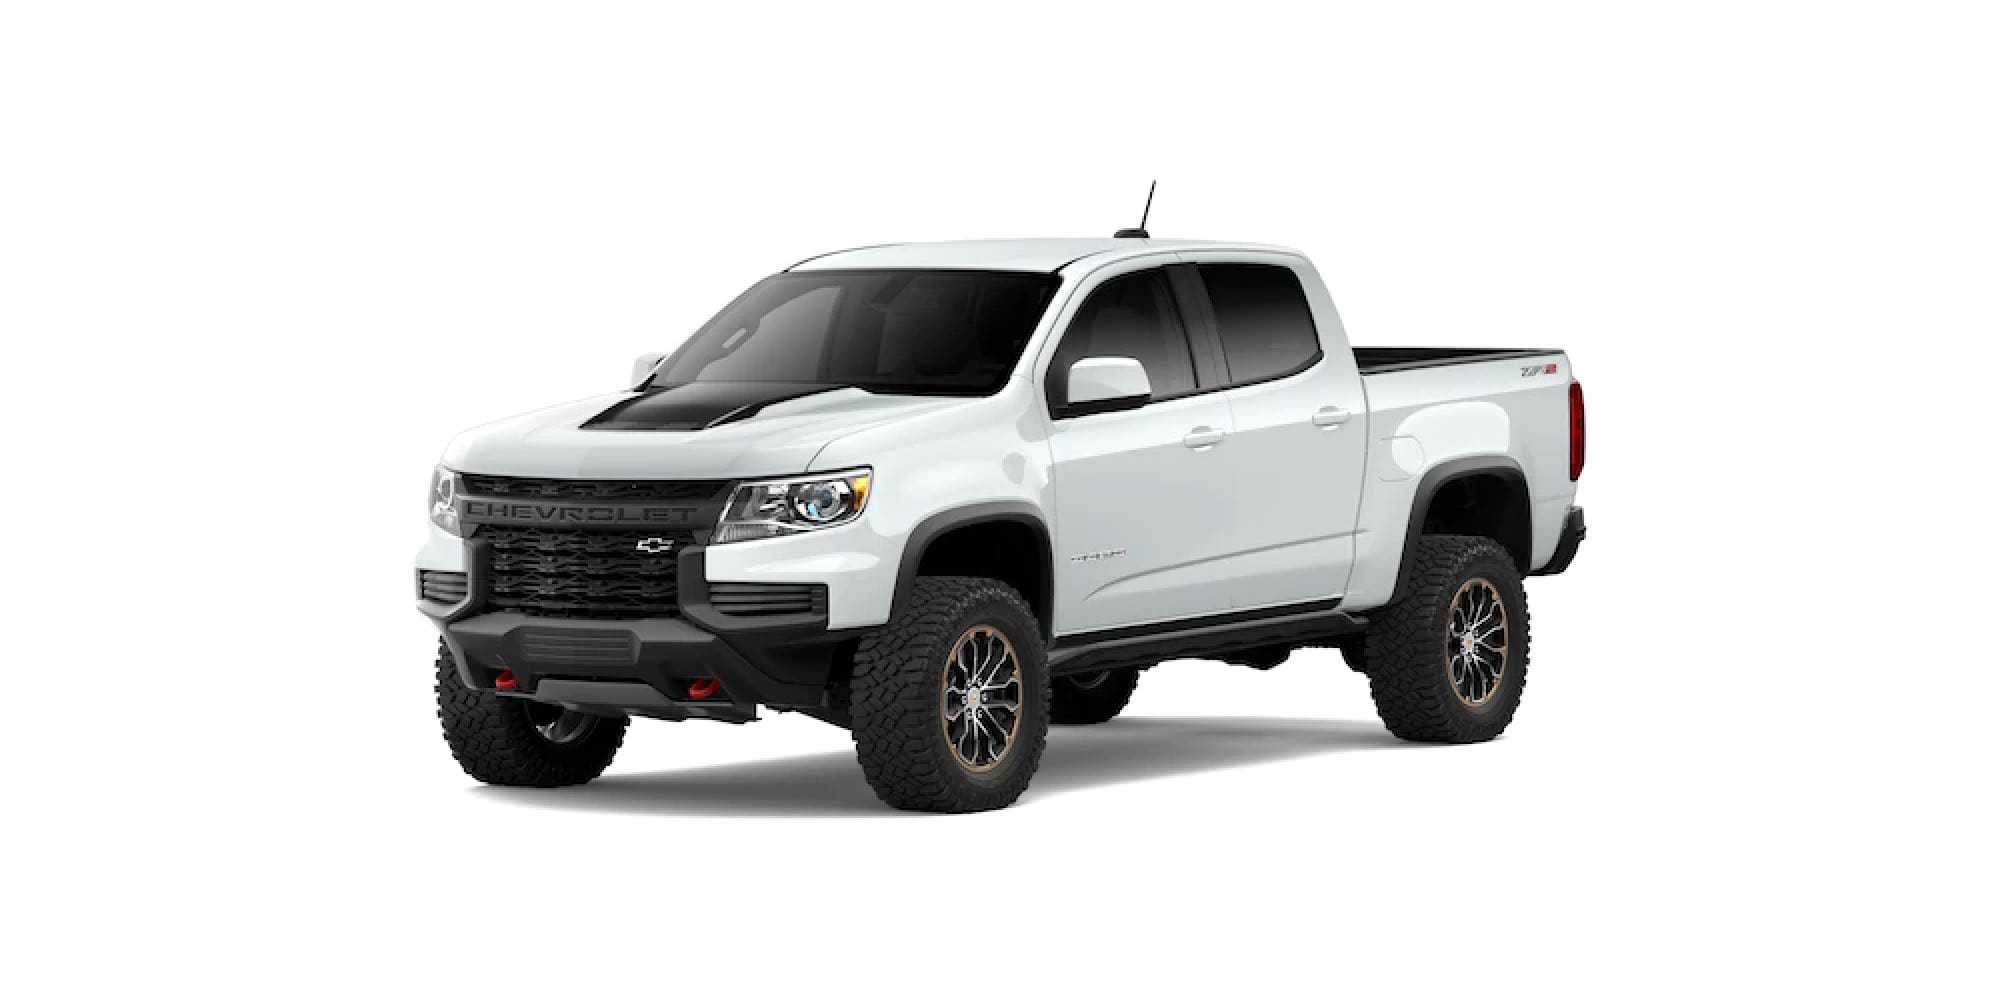 2021 Chevy Colorado in Summit White